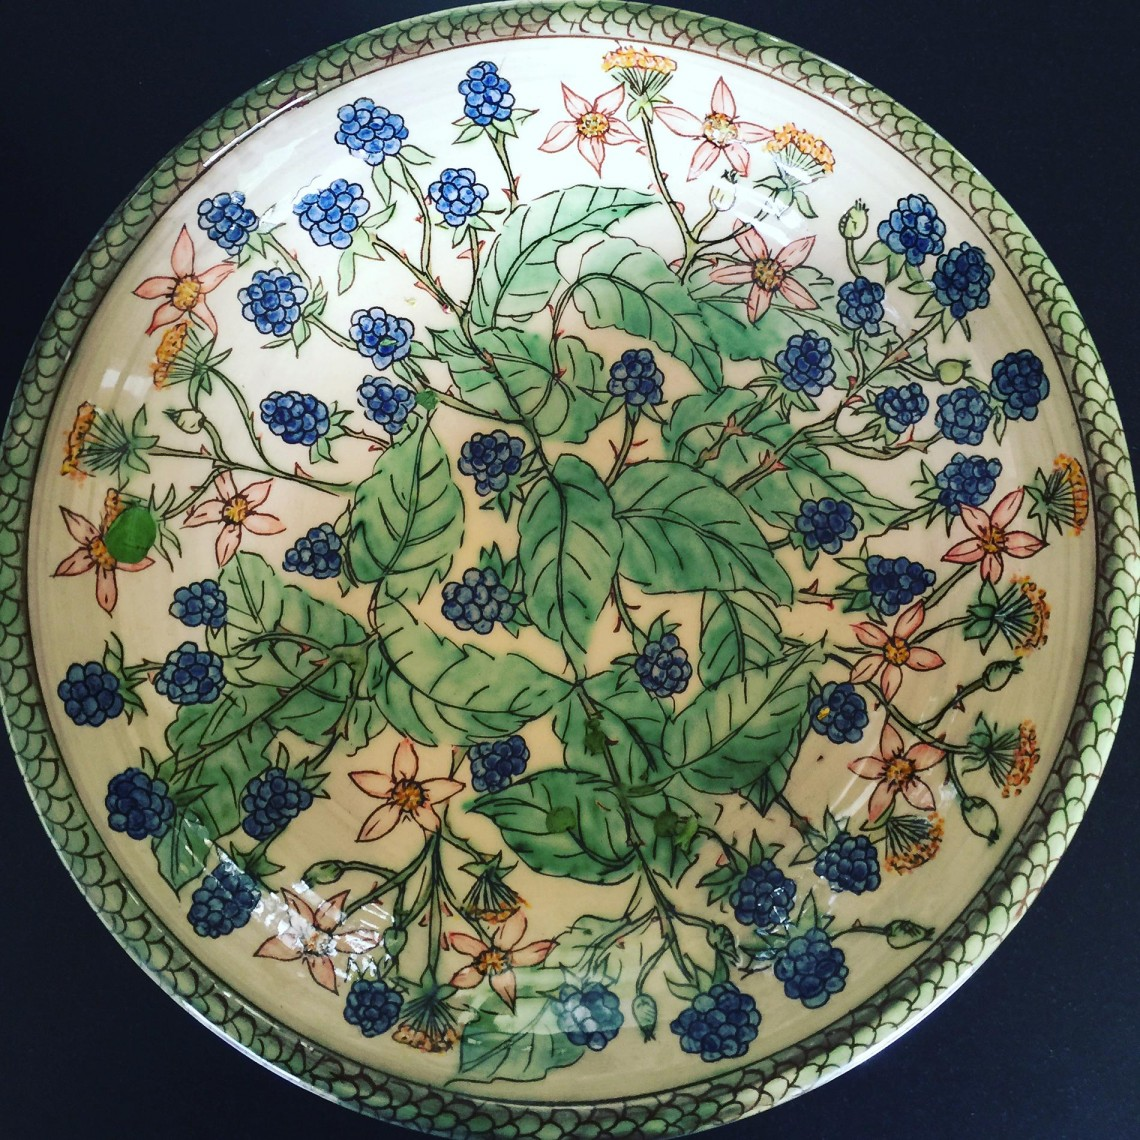 A hand painted pottery charger decorated wild bramble leaves, brambles and pink and yellow wildflowers. Handmade by Peter Thomas of Tower House Pottery, Berwick Upon Tweed, Northumberland